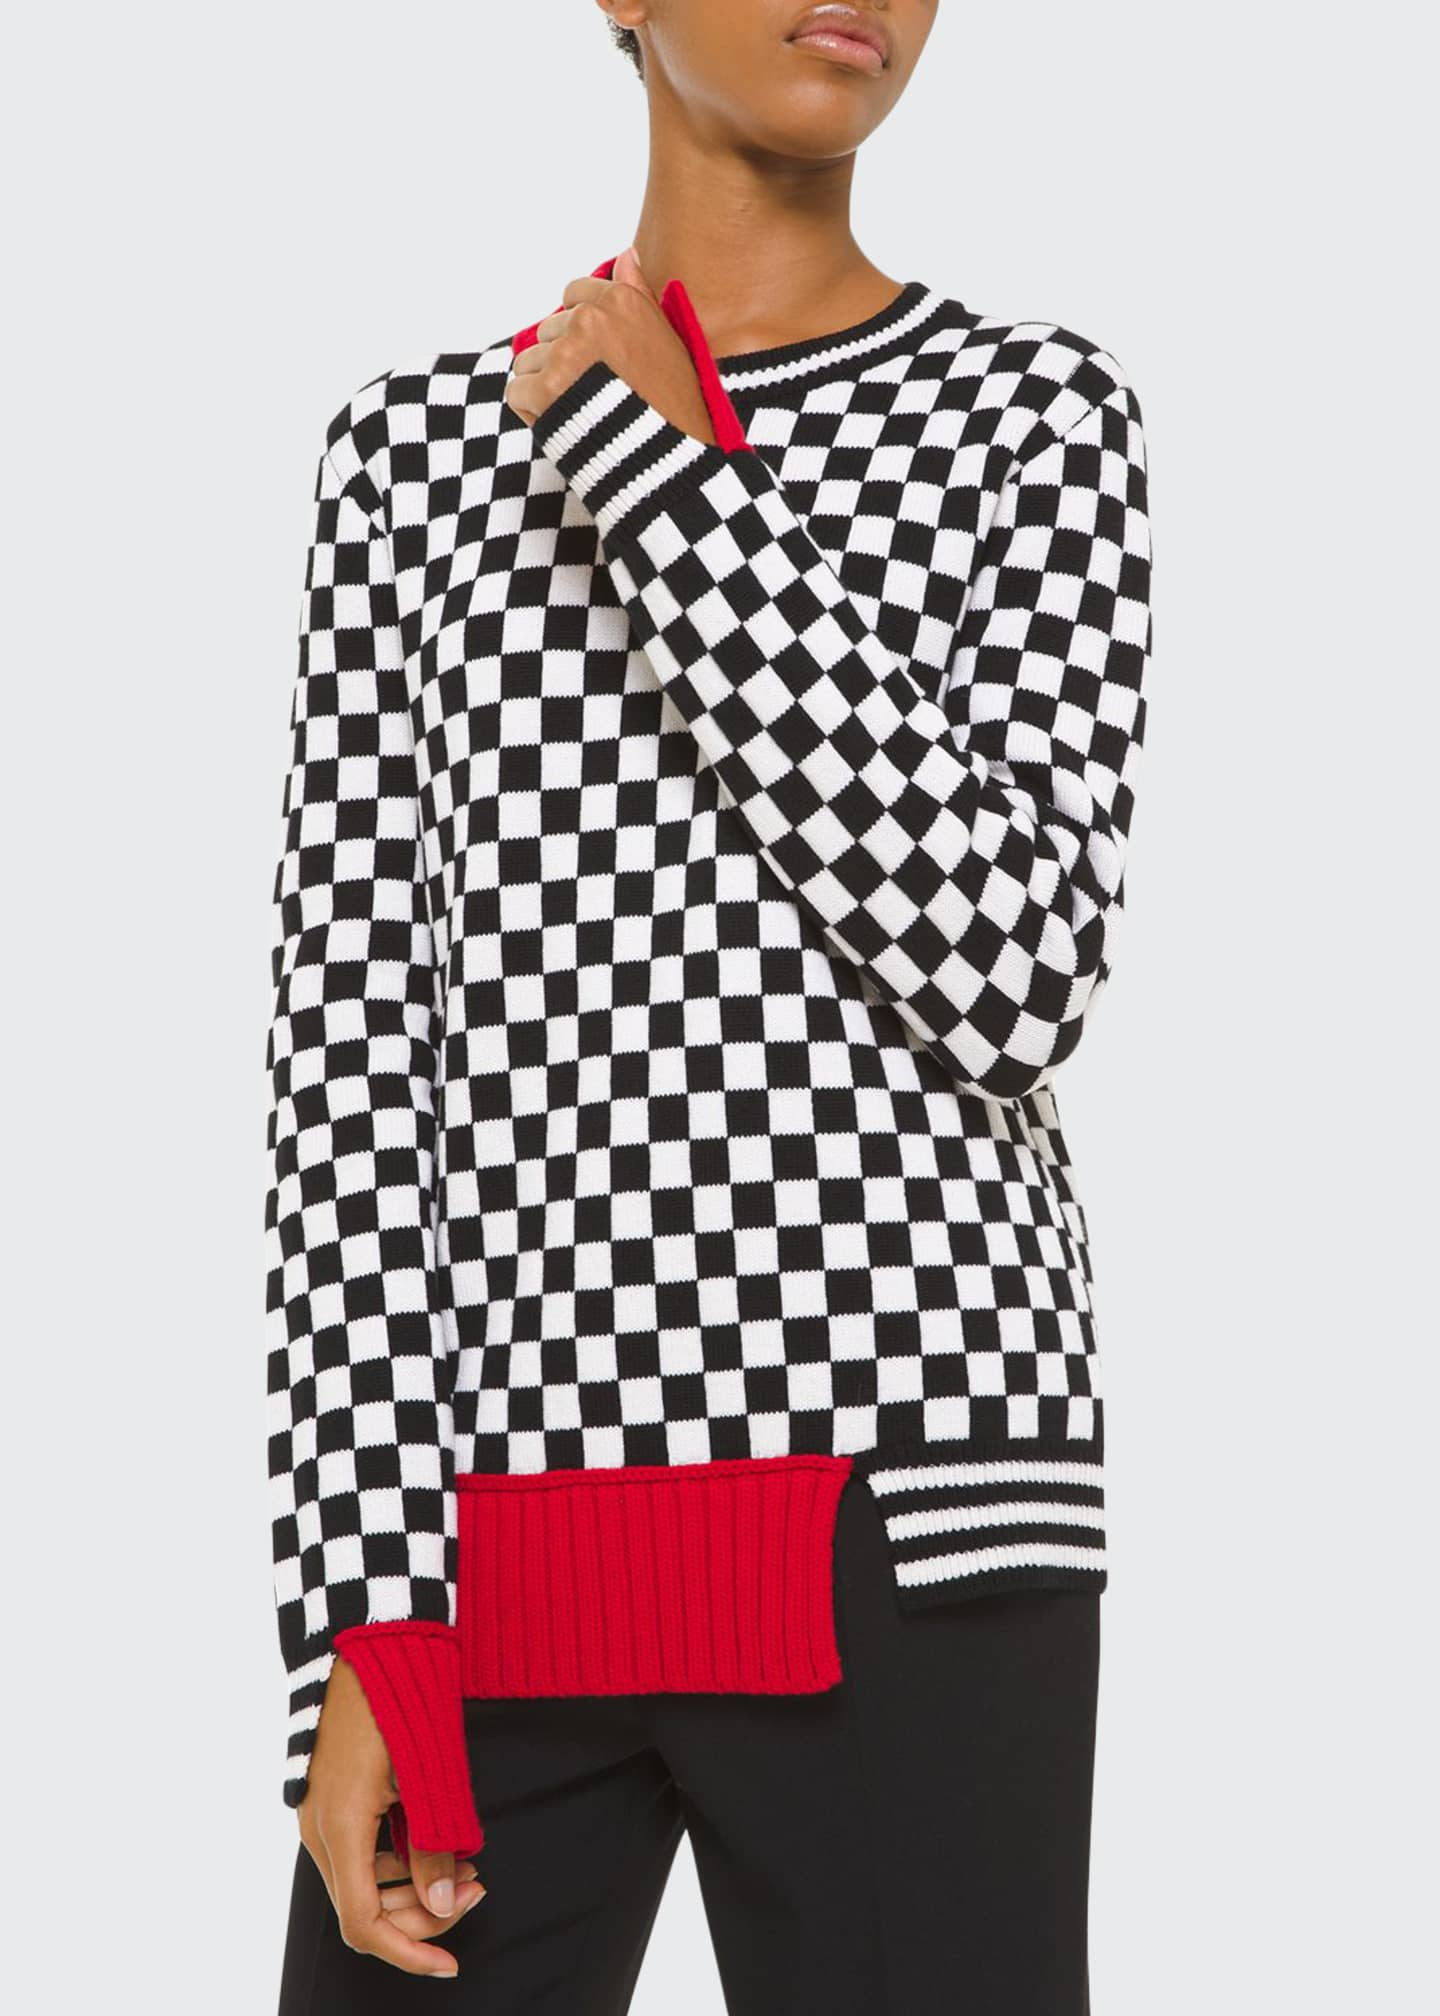 Michael Kors Collection Cashmere Checkerboard-Jacquard Sweater